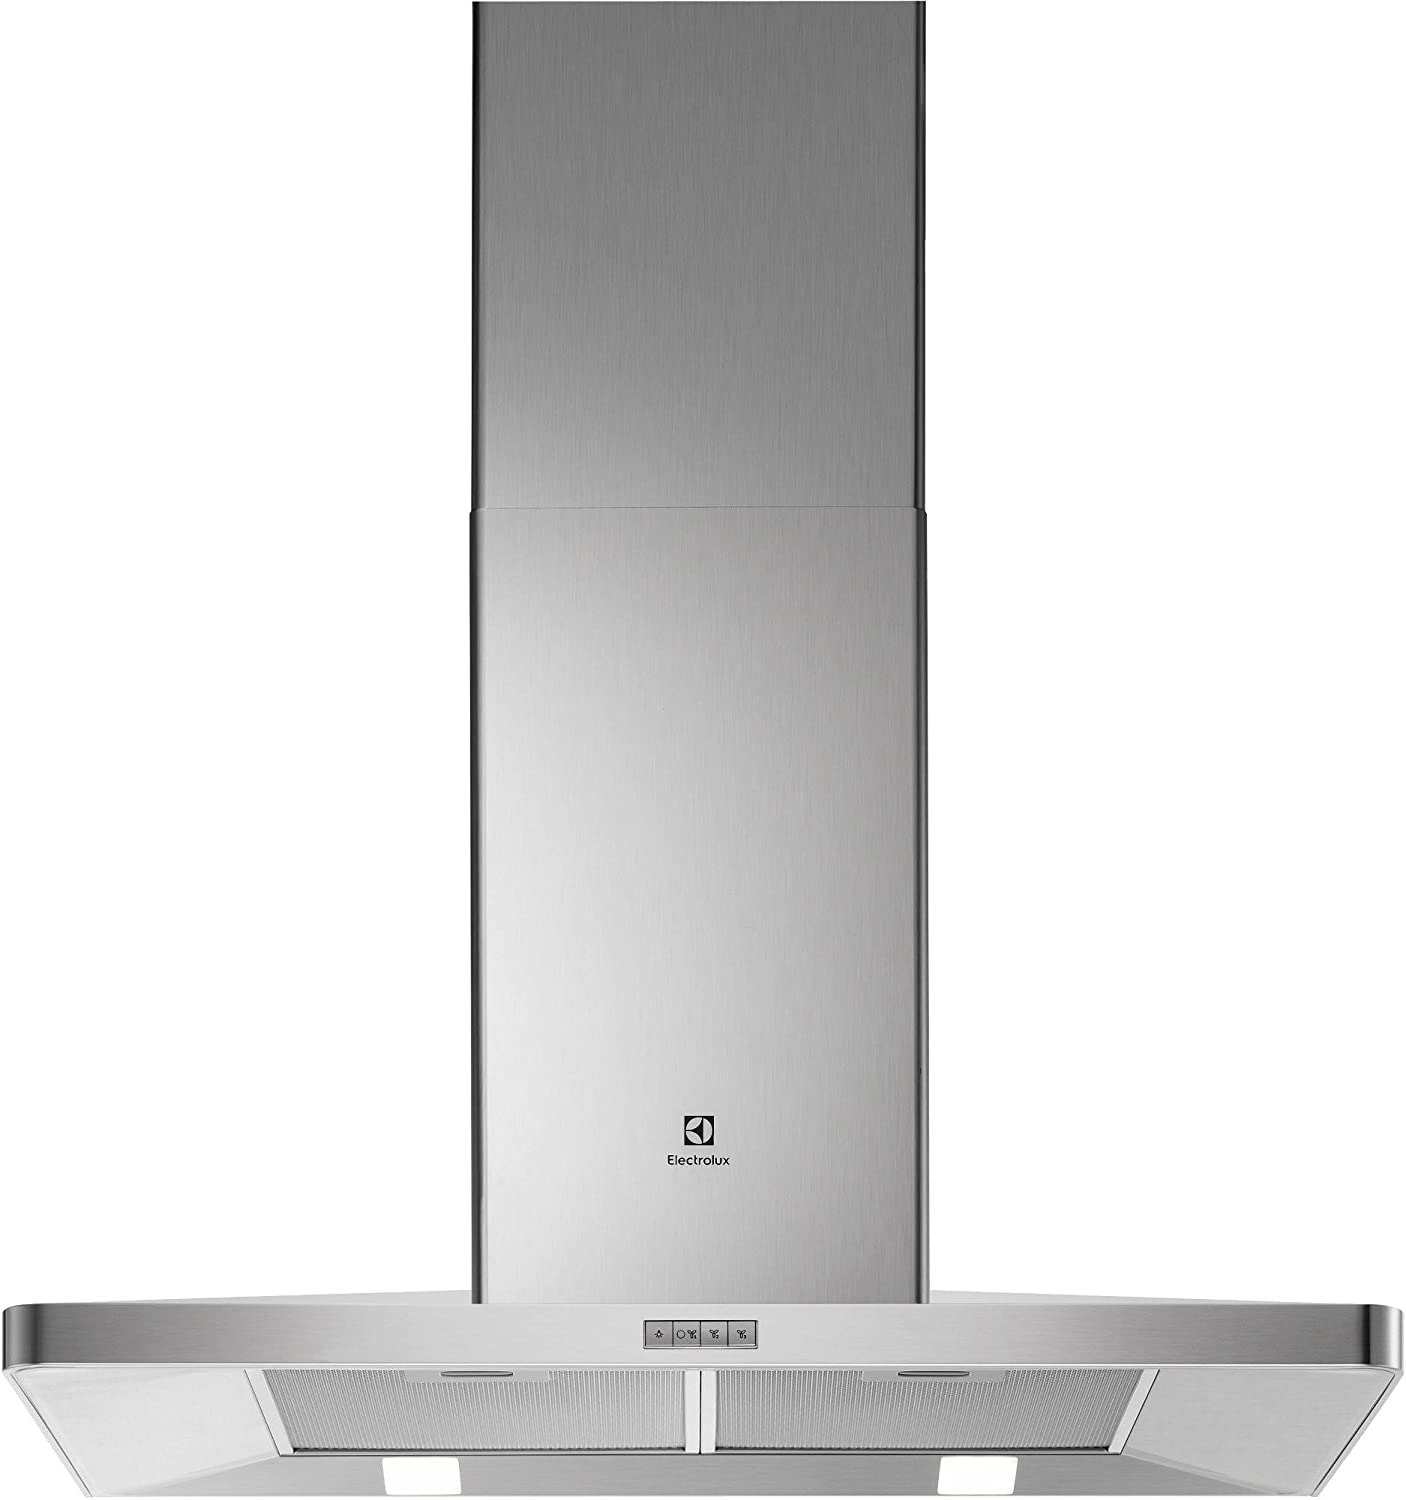 Electrolux – extractora Decoratives EFF 90462 Ox -: Amazon.es: Grandes electrodomésticos